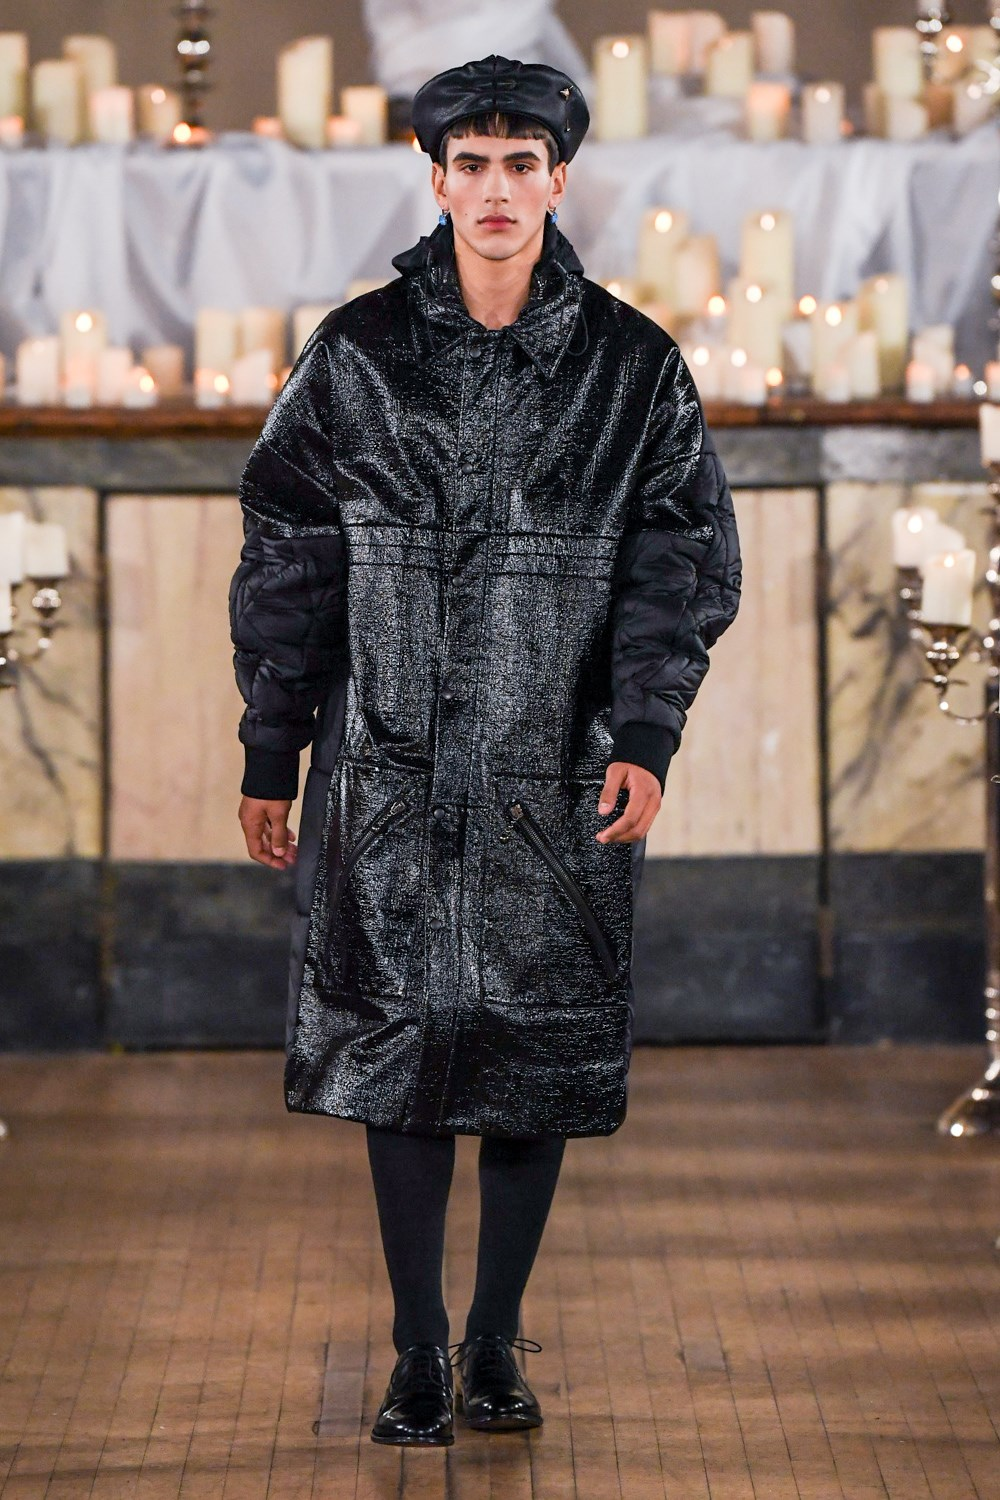 JORDANLUCA - Automne-Hiver 2020-2021 - London Fashion Week Men's